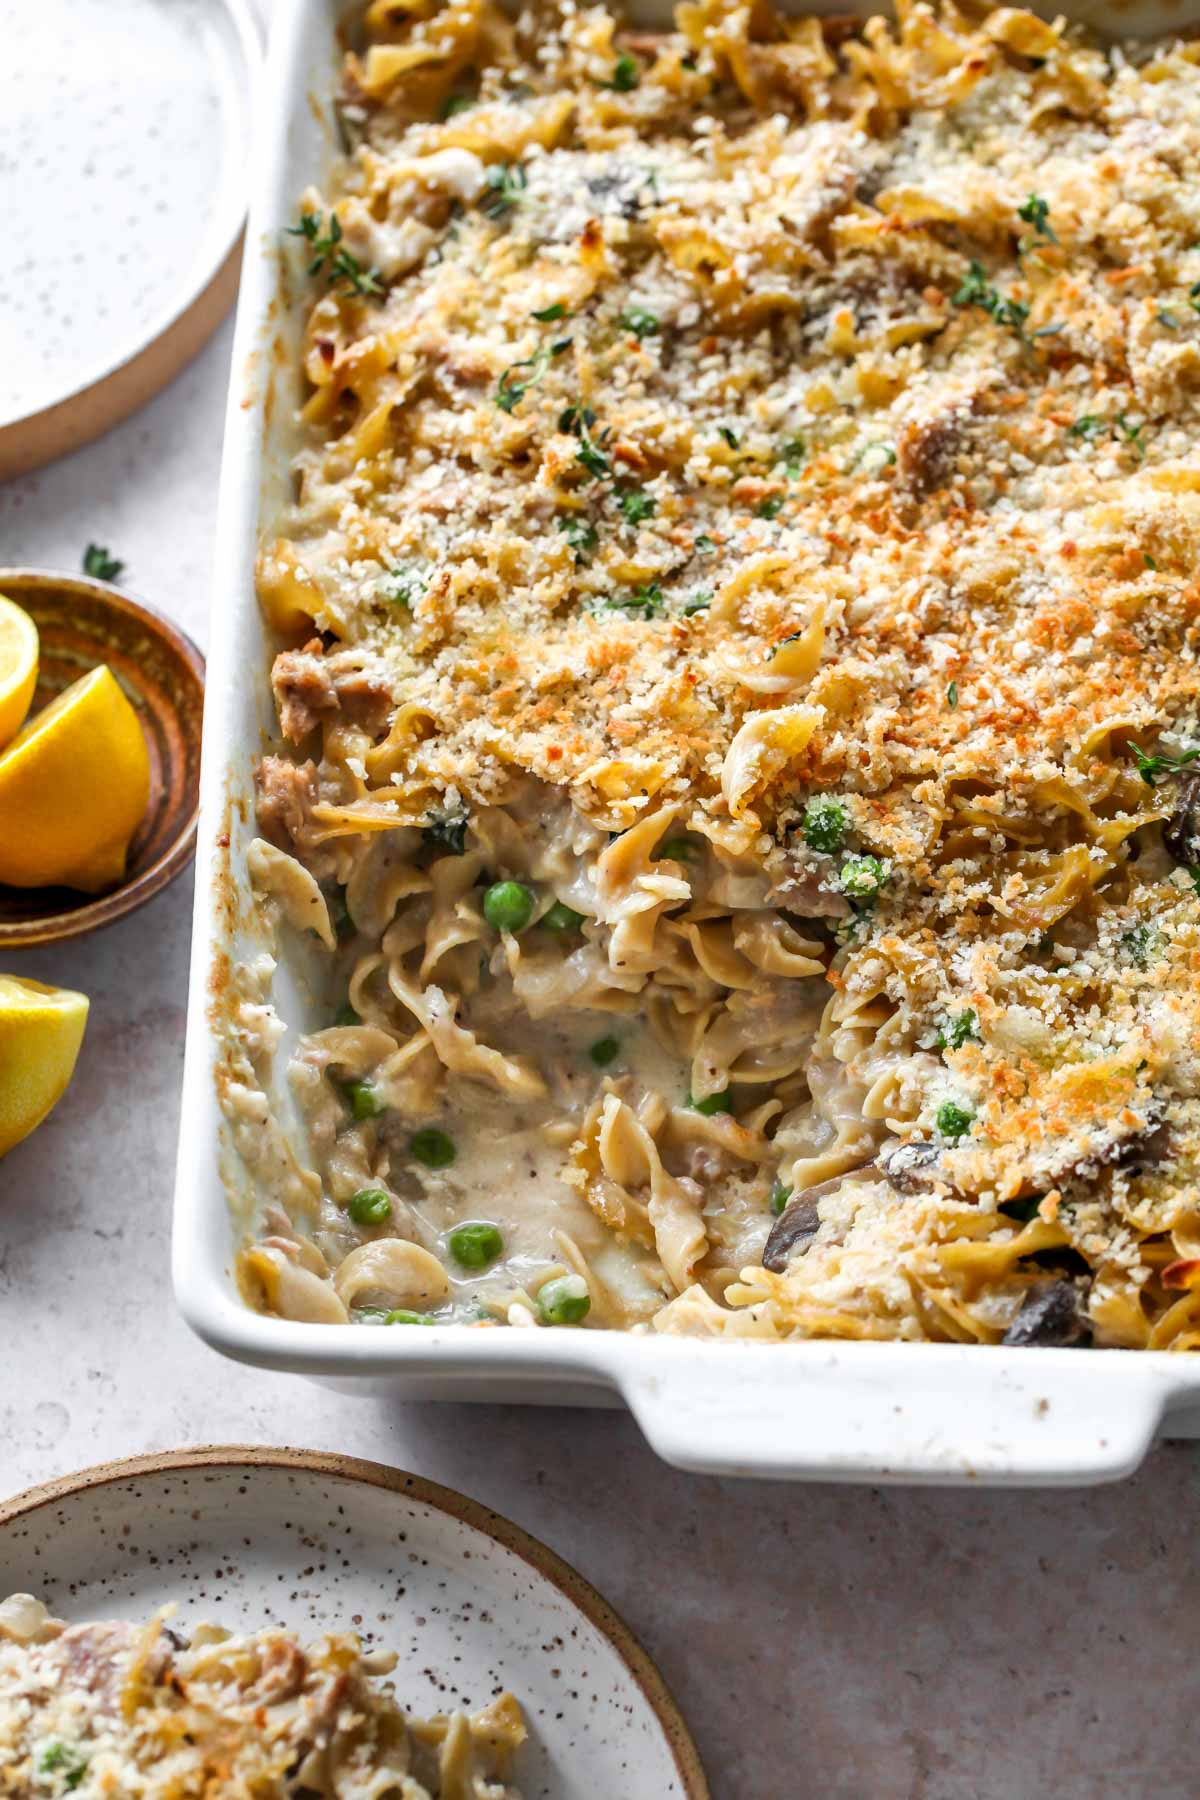 Homemade Tuna Noodle Casserole in a white dish with a serving scooped out